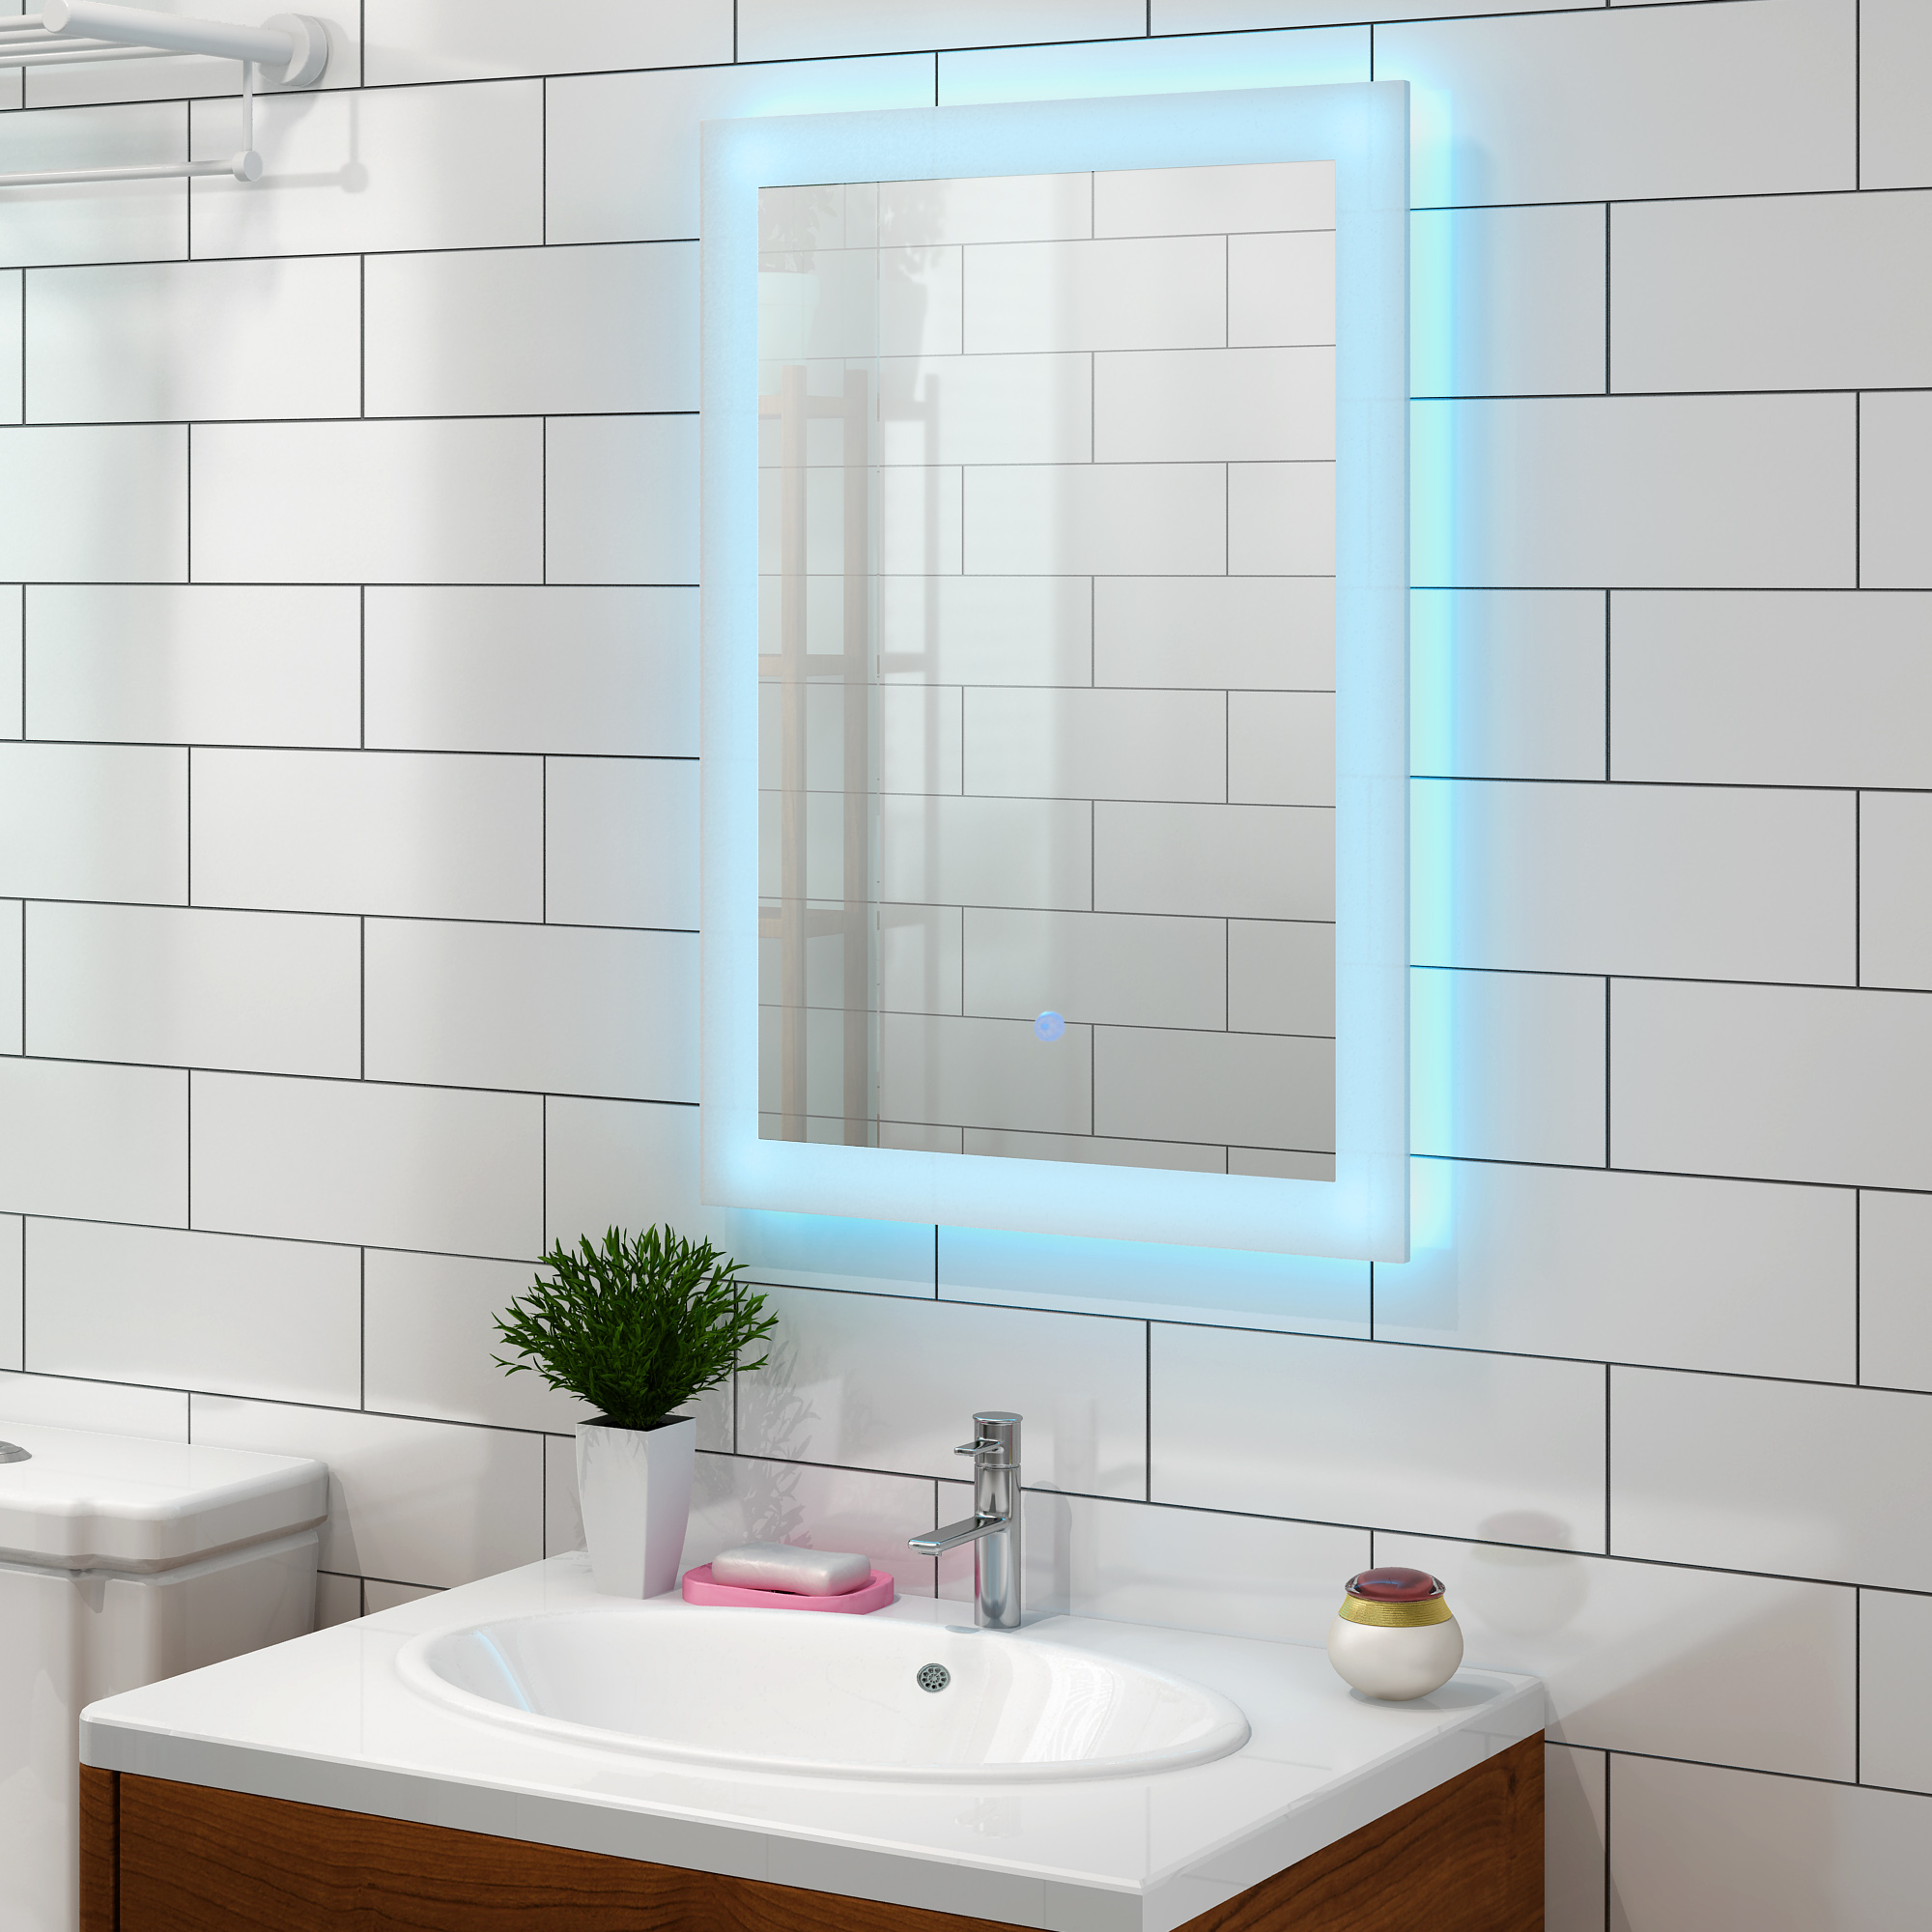 Panana Bathroom Mirror 700 X 500 Mm Designer Illuminated LEDs Bathroom Mirror Light Sensor + Demister Fast Delivery